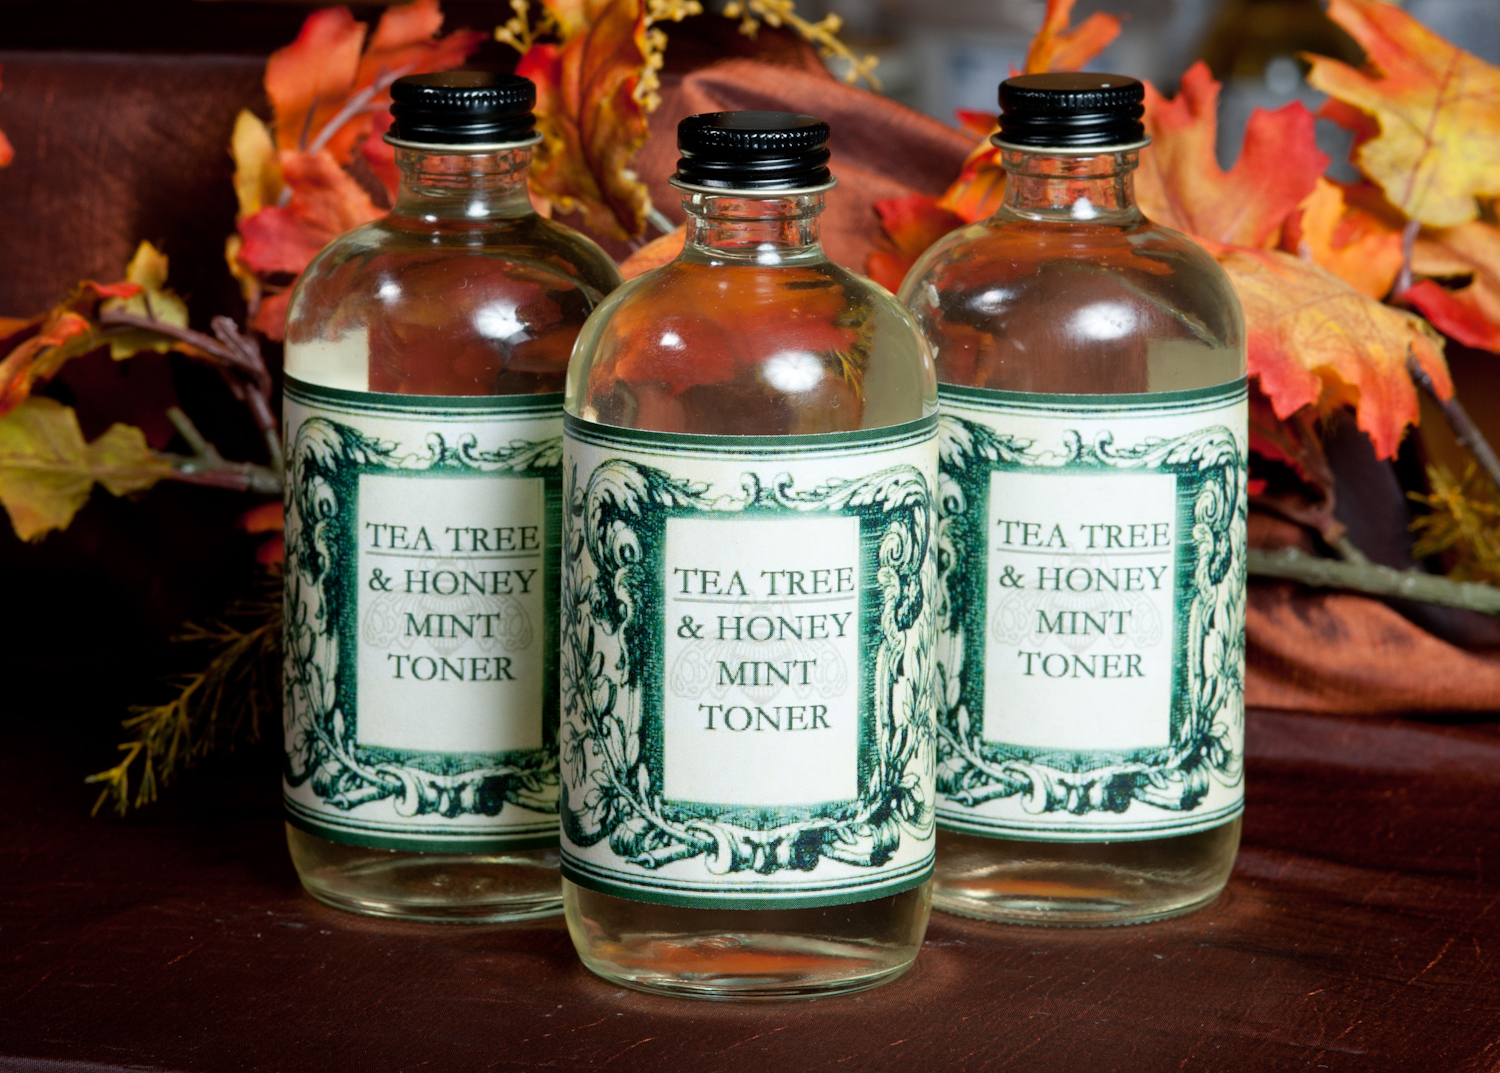 Tea Tree & Honey Mint Toner